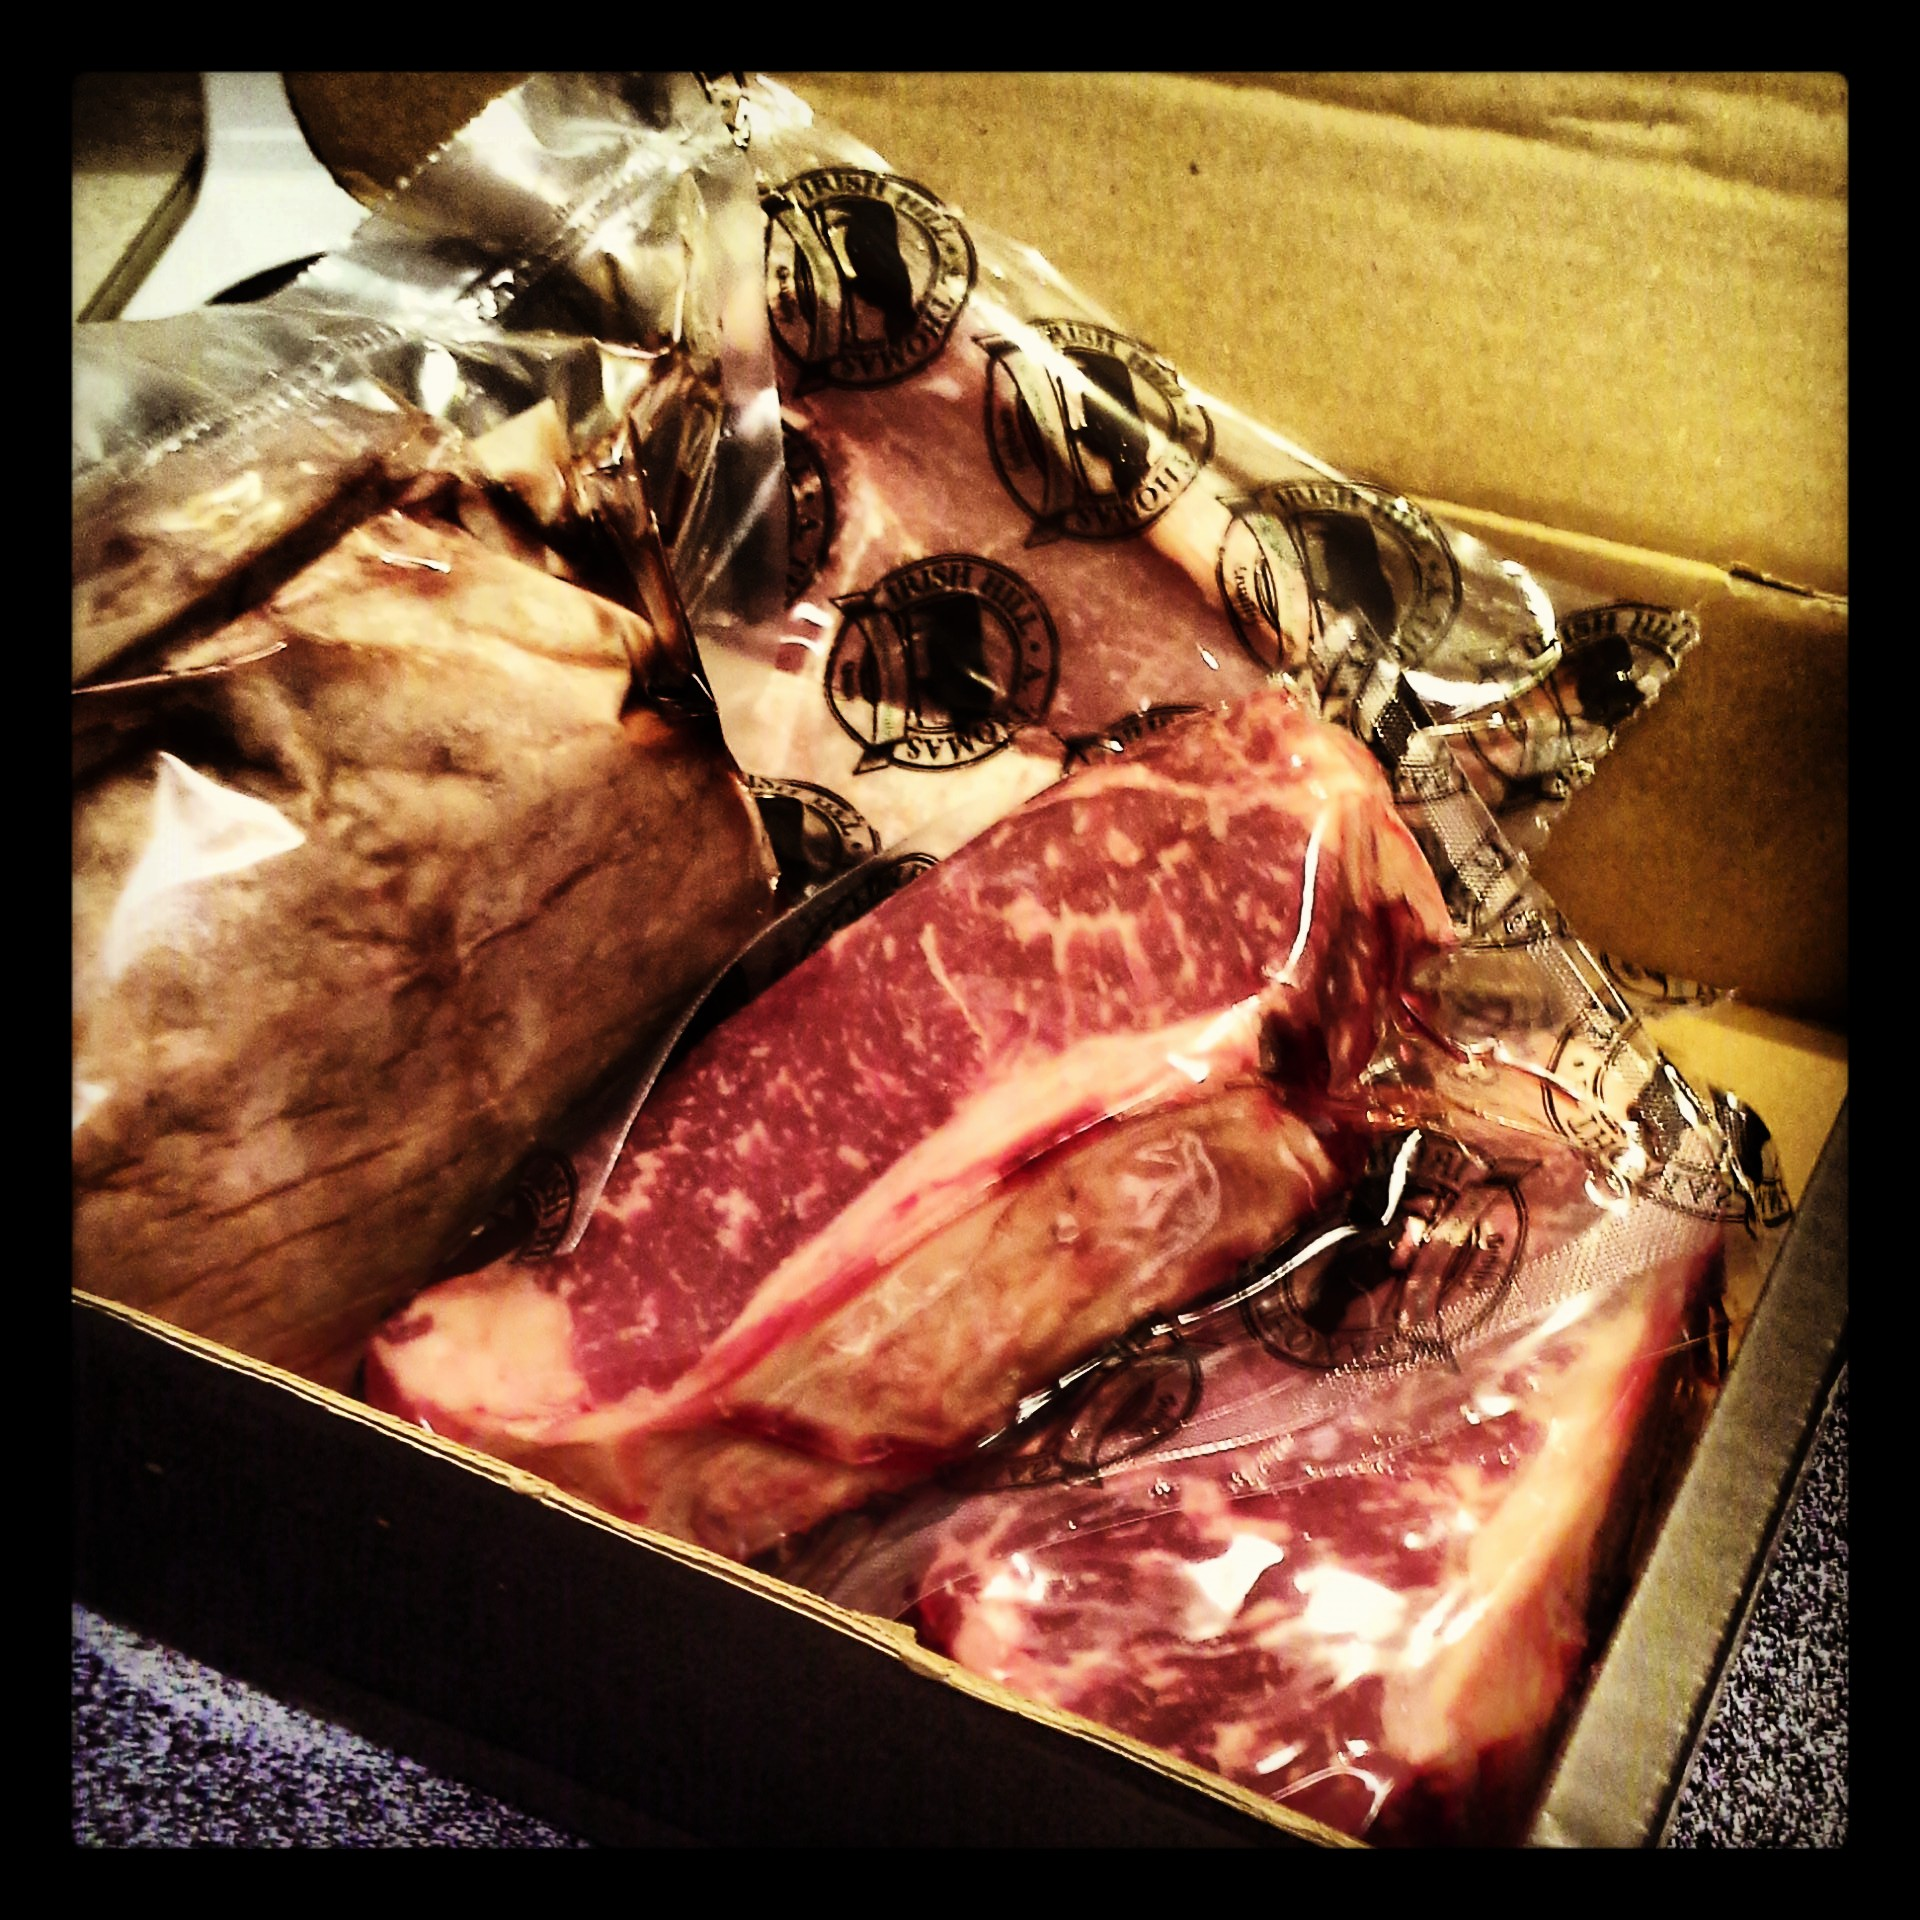 Review Premium Meat From Mattingly Worth The Investment